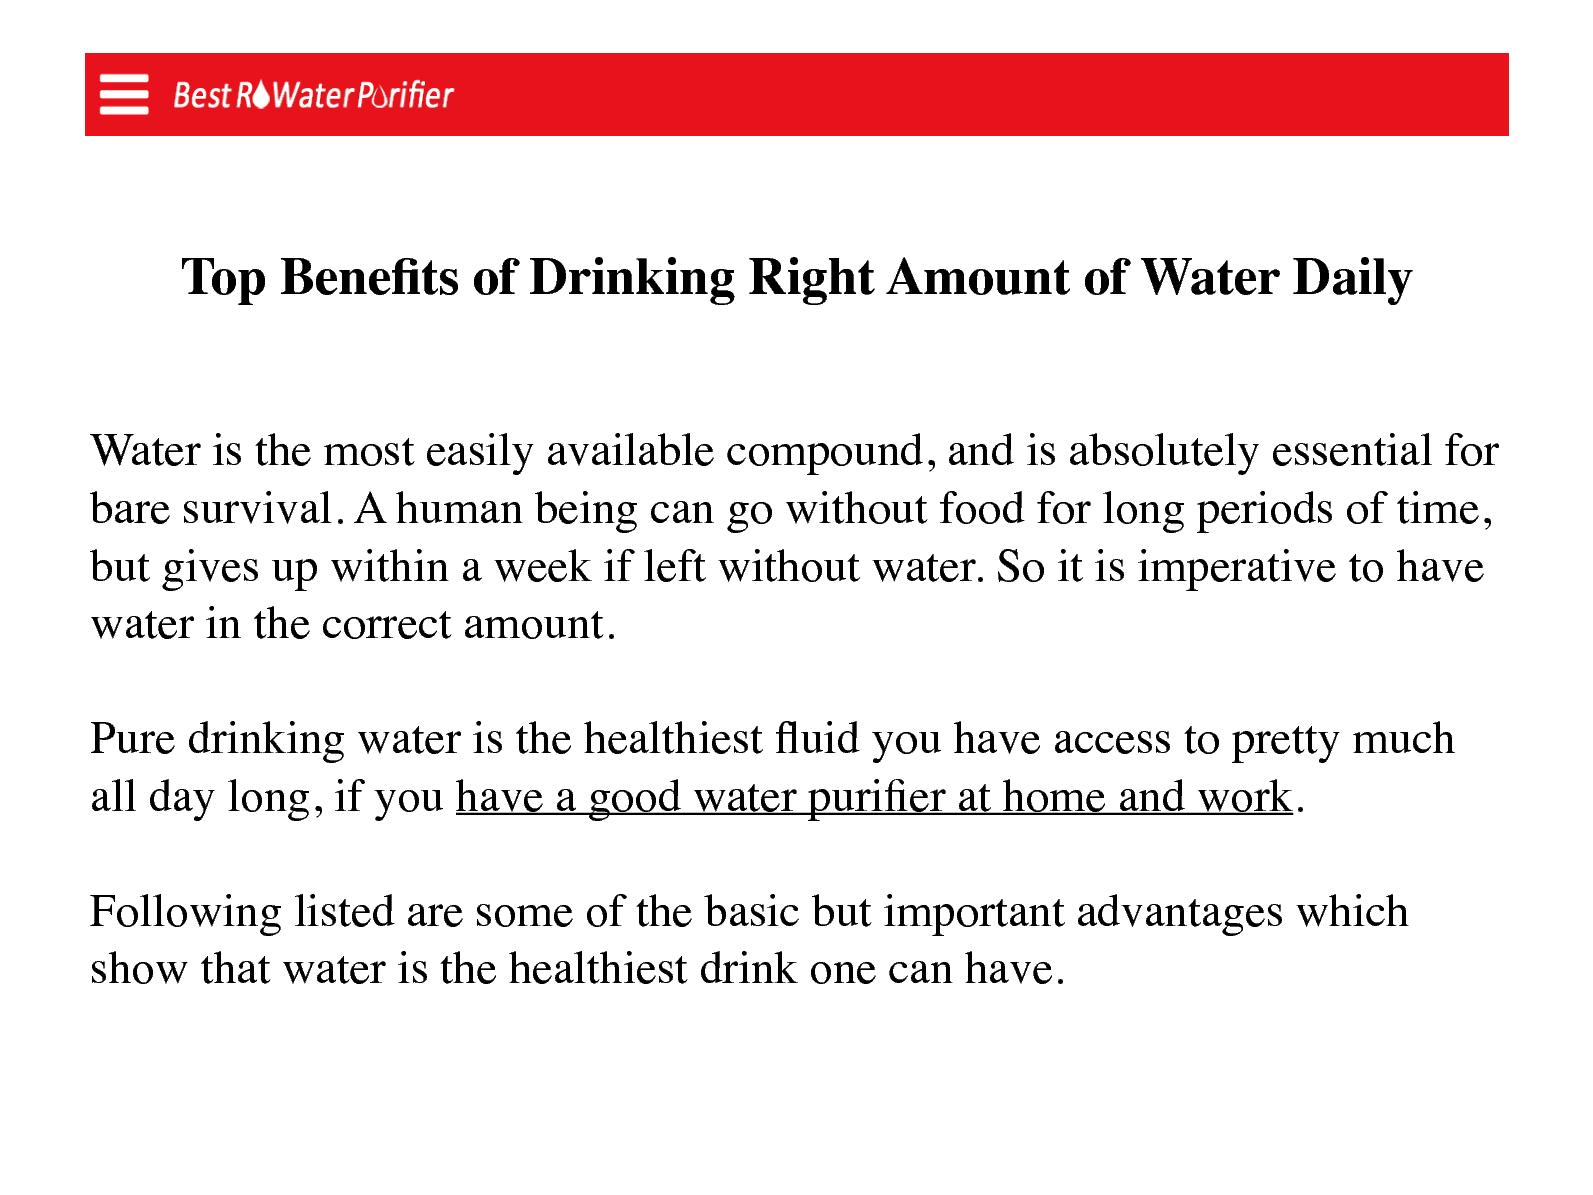 Benefits Of Drinking Right Amount Of Water Daily